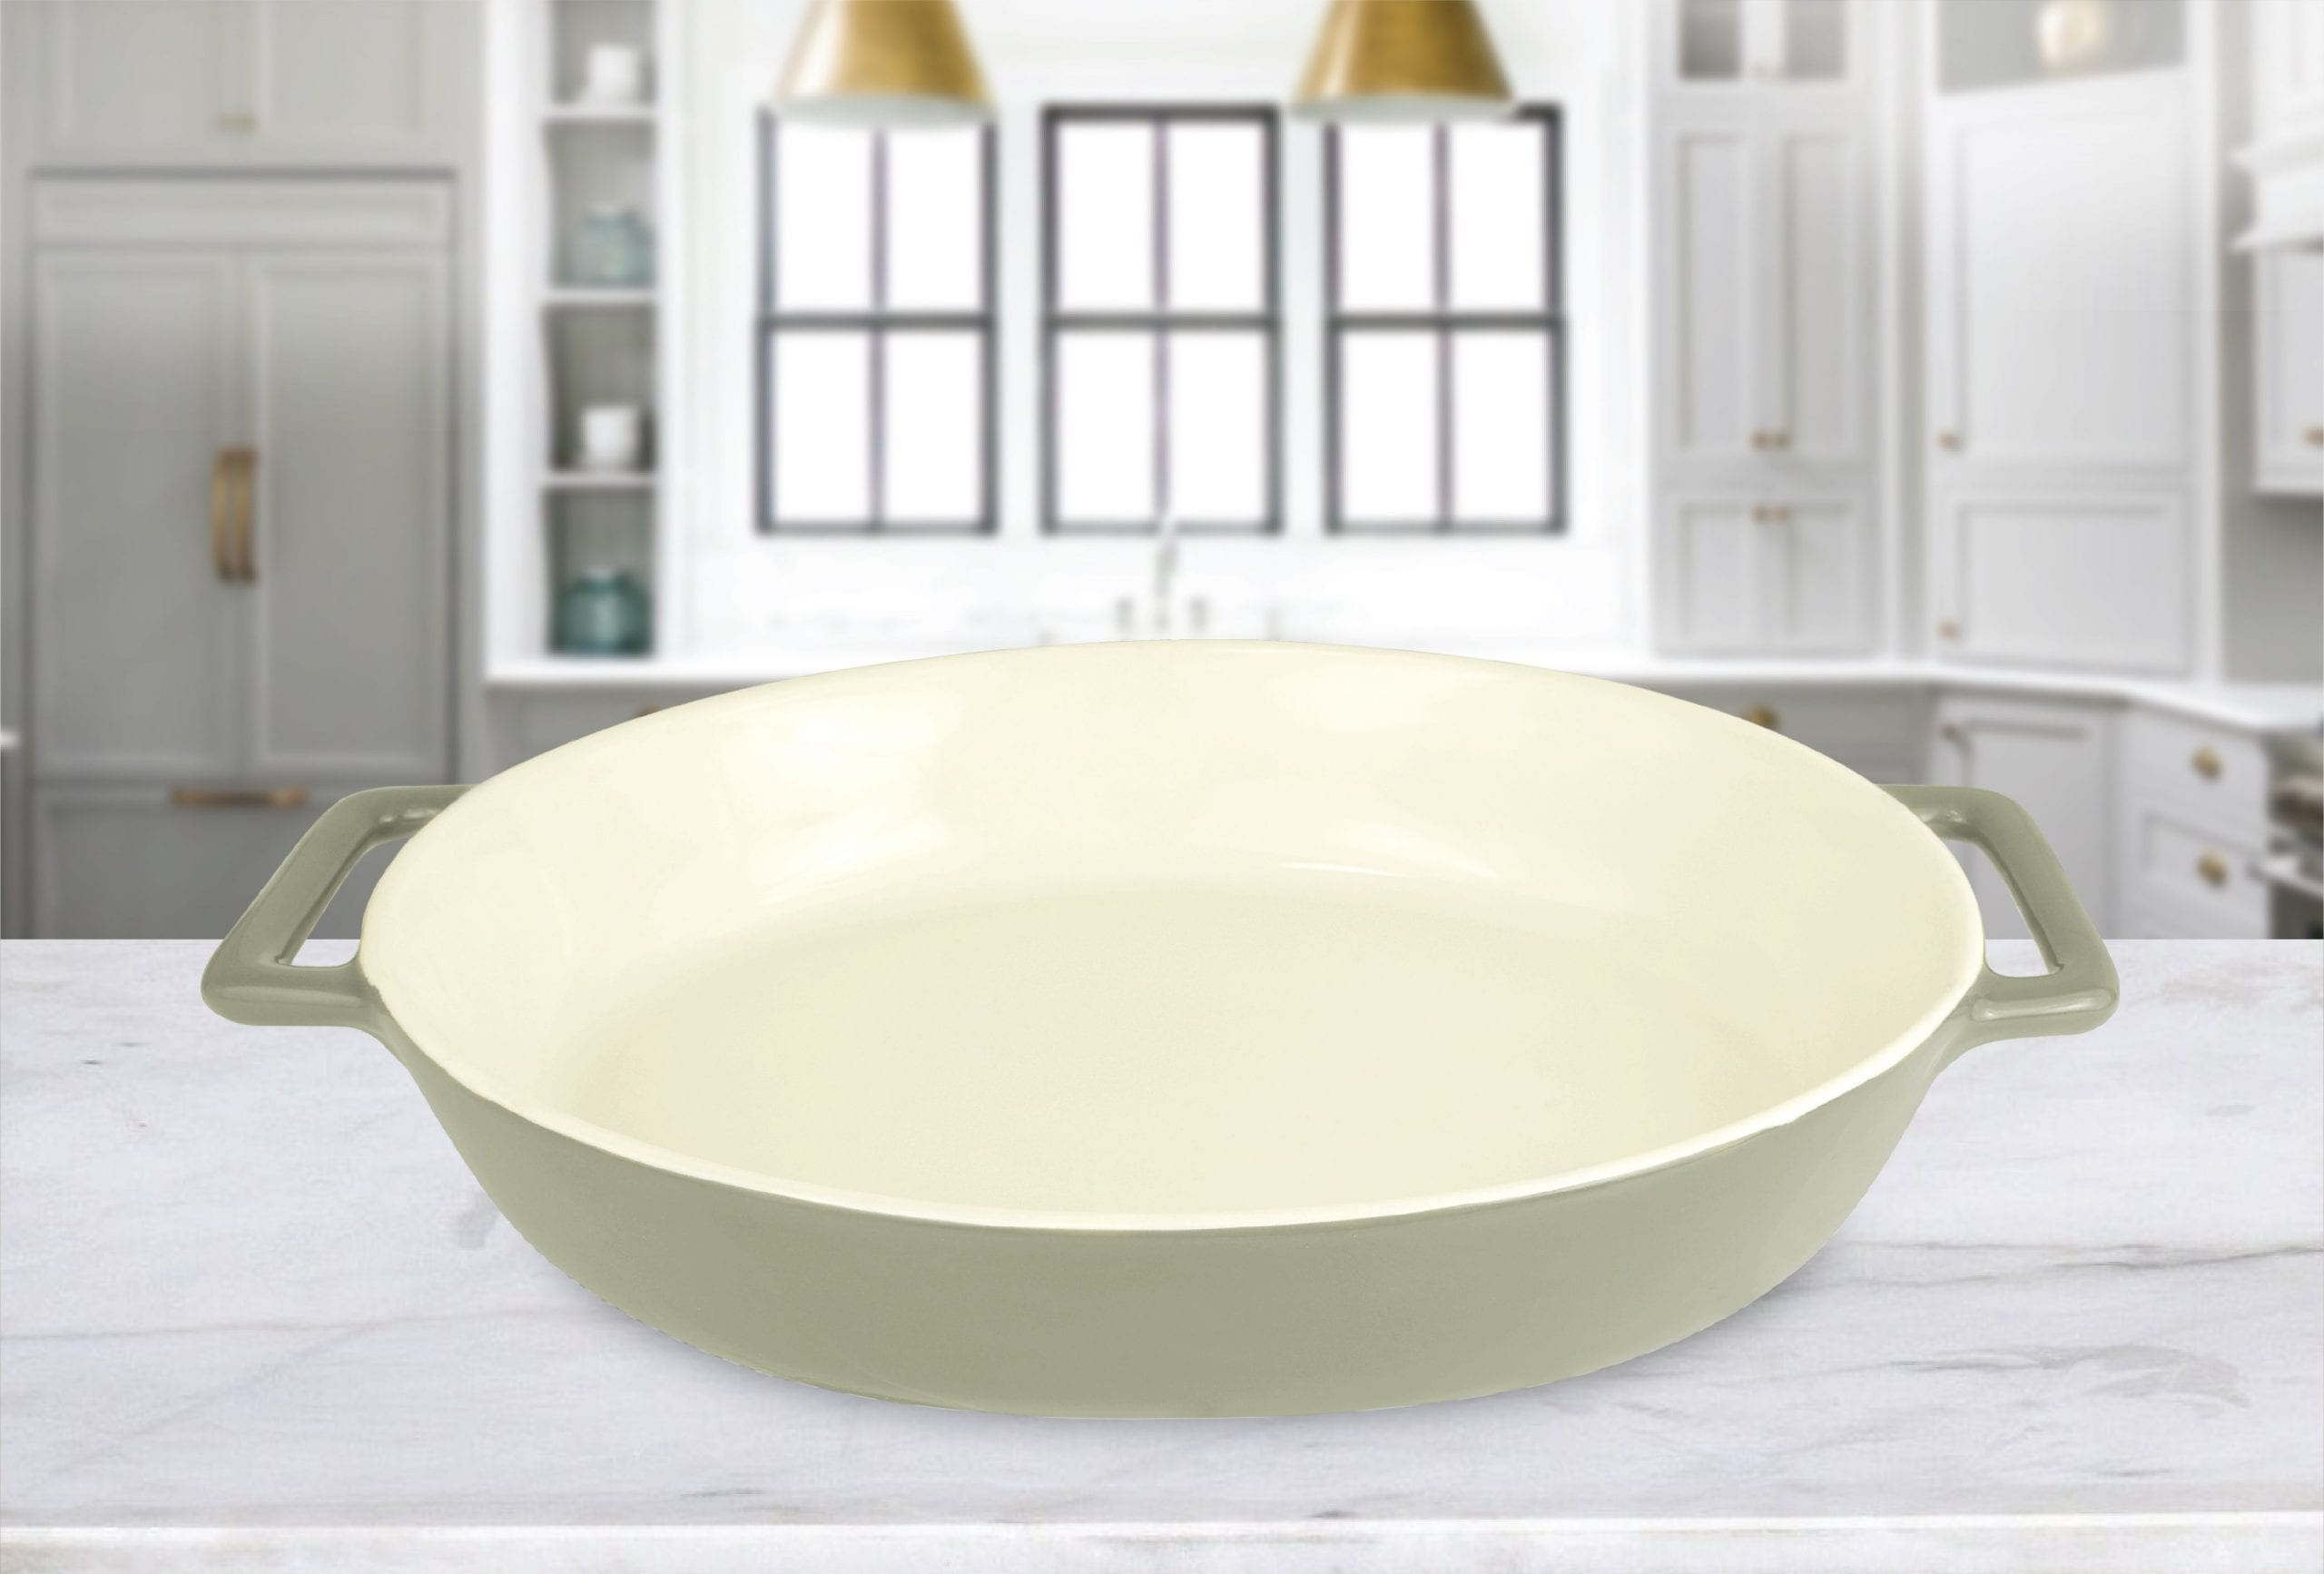 Le Regalo Stoneware Oval Baking Dish w Handles 1 scaled